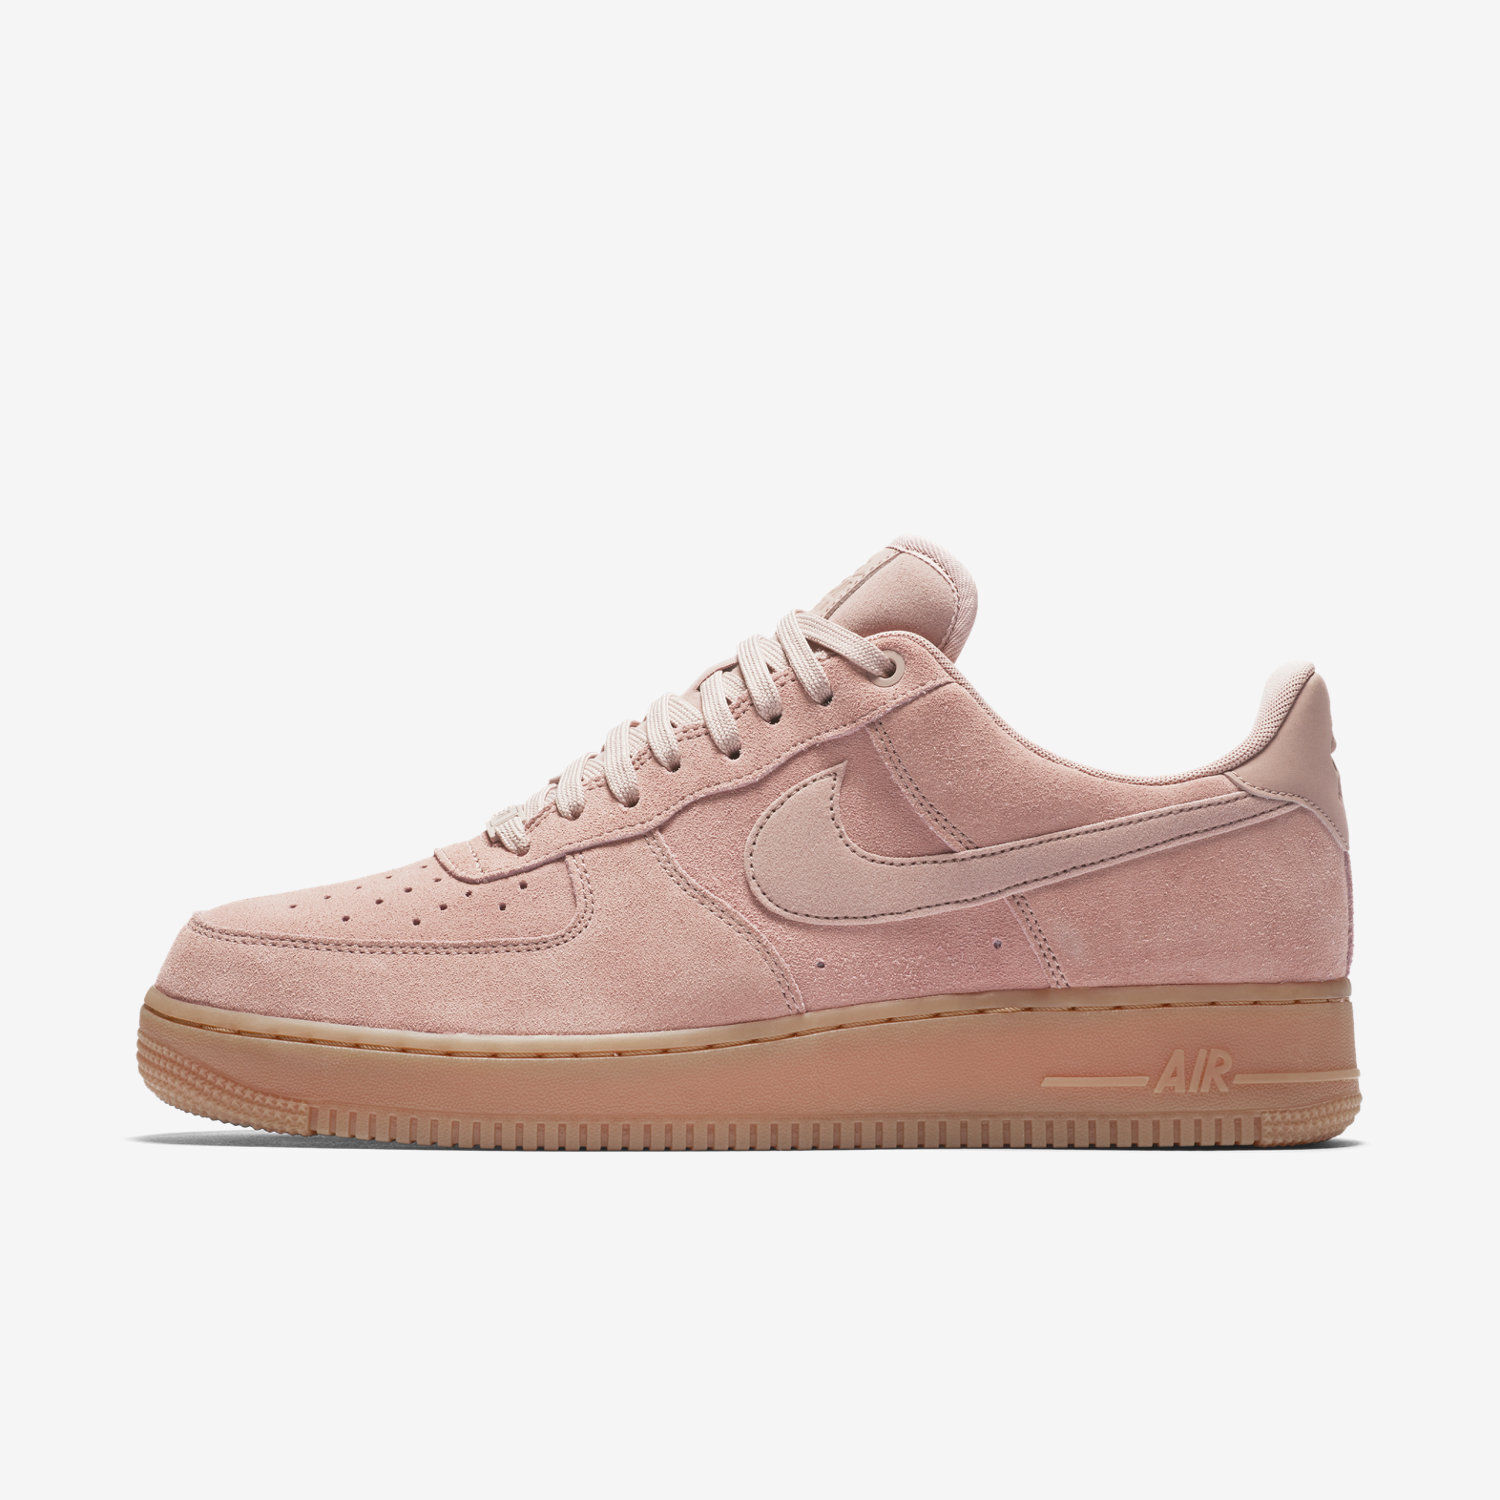 {AA1117-600} MEN'S NIKE AIR FORCE 1 '07 LV8 SUEDE SHOE PARTICLE PINK/GUM  Seasonal price cuts, discount benefits